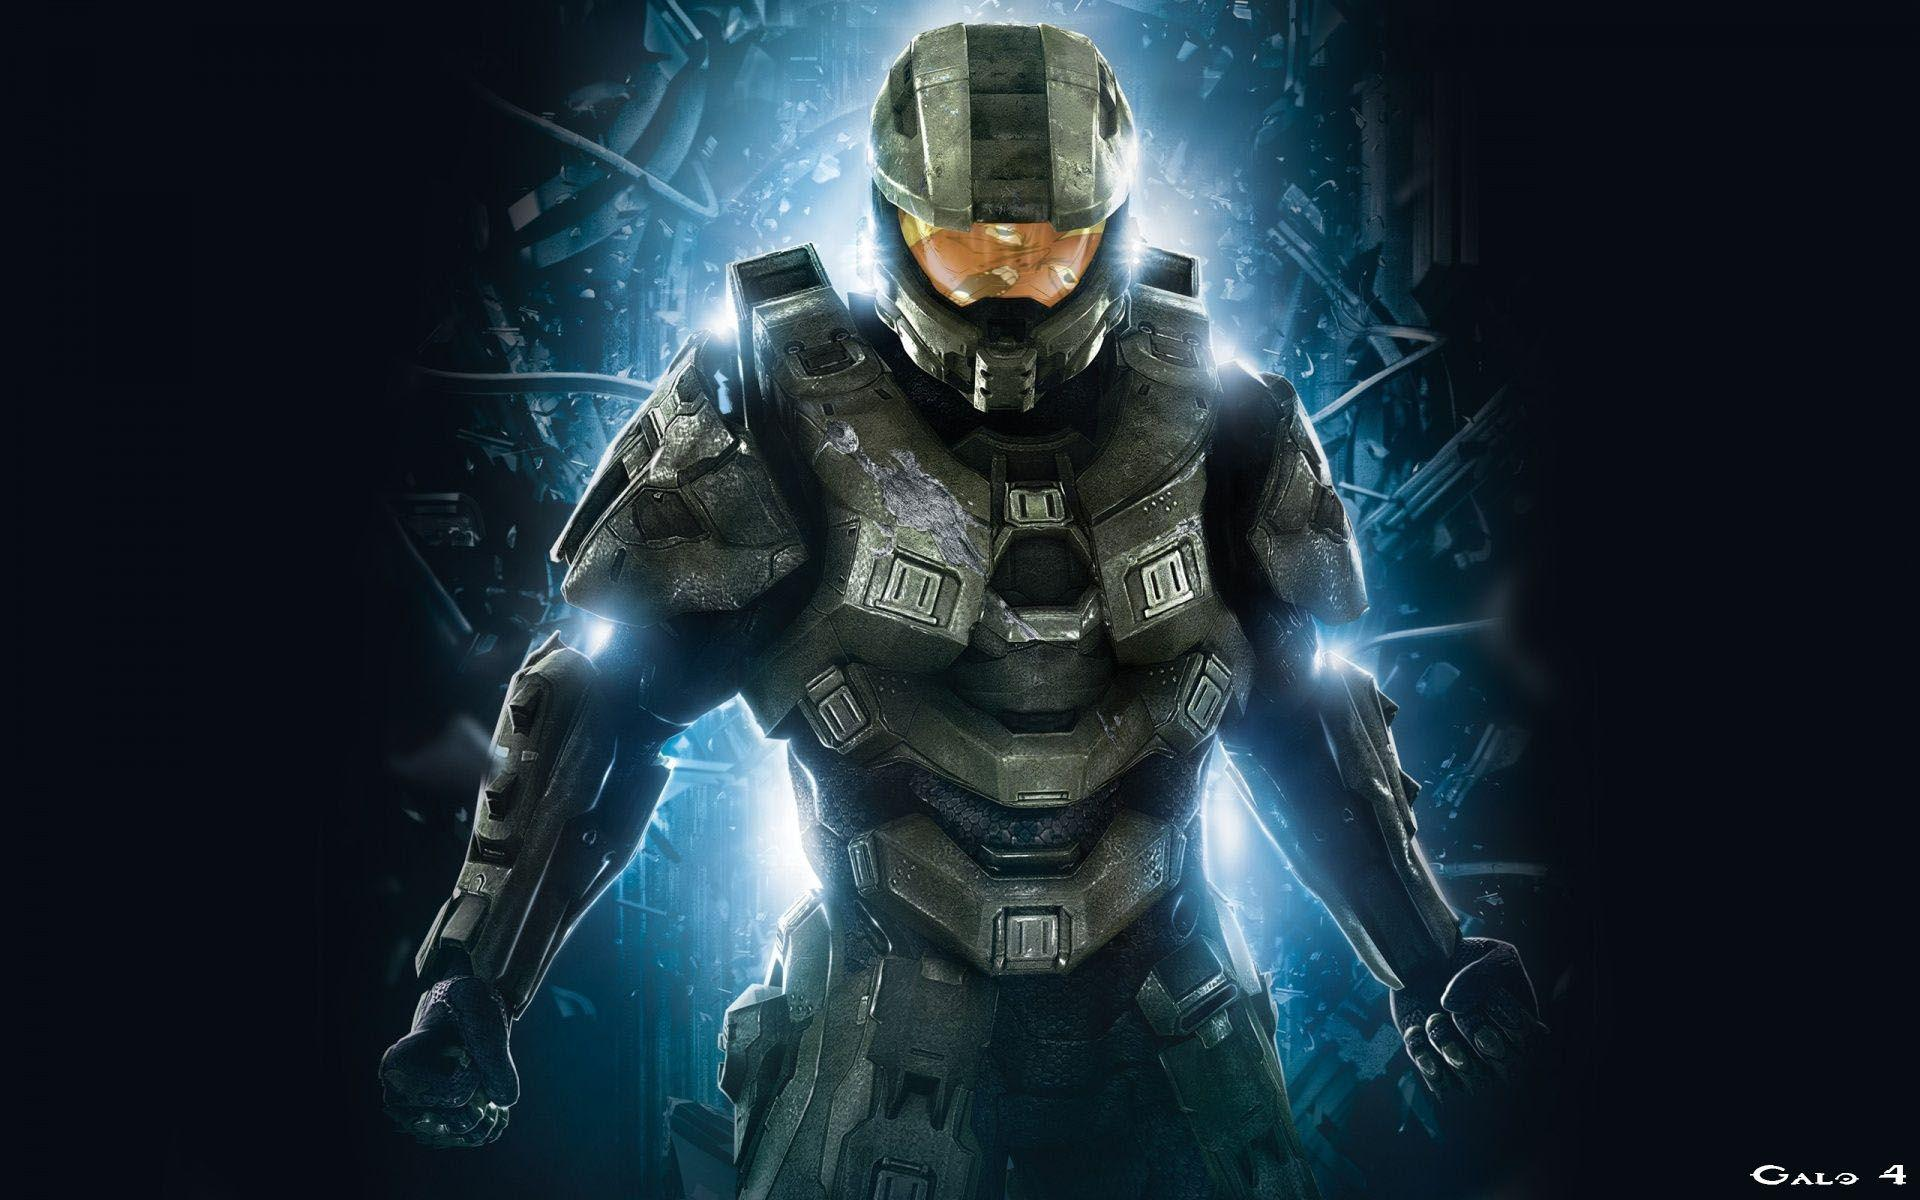 Halo 4 Wallpapers 1920x1080 Wallpaper Cave